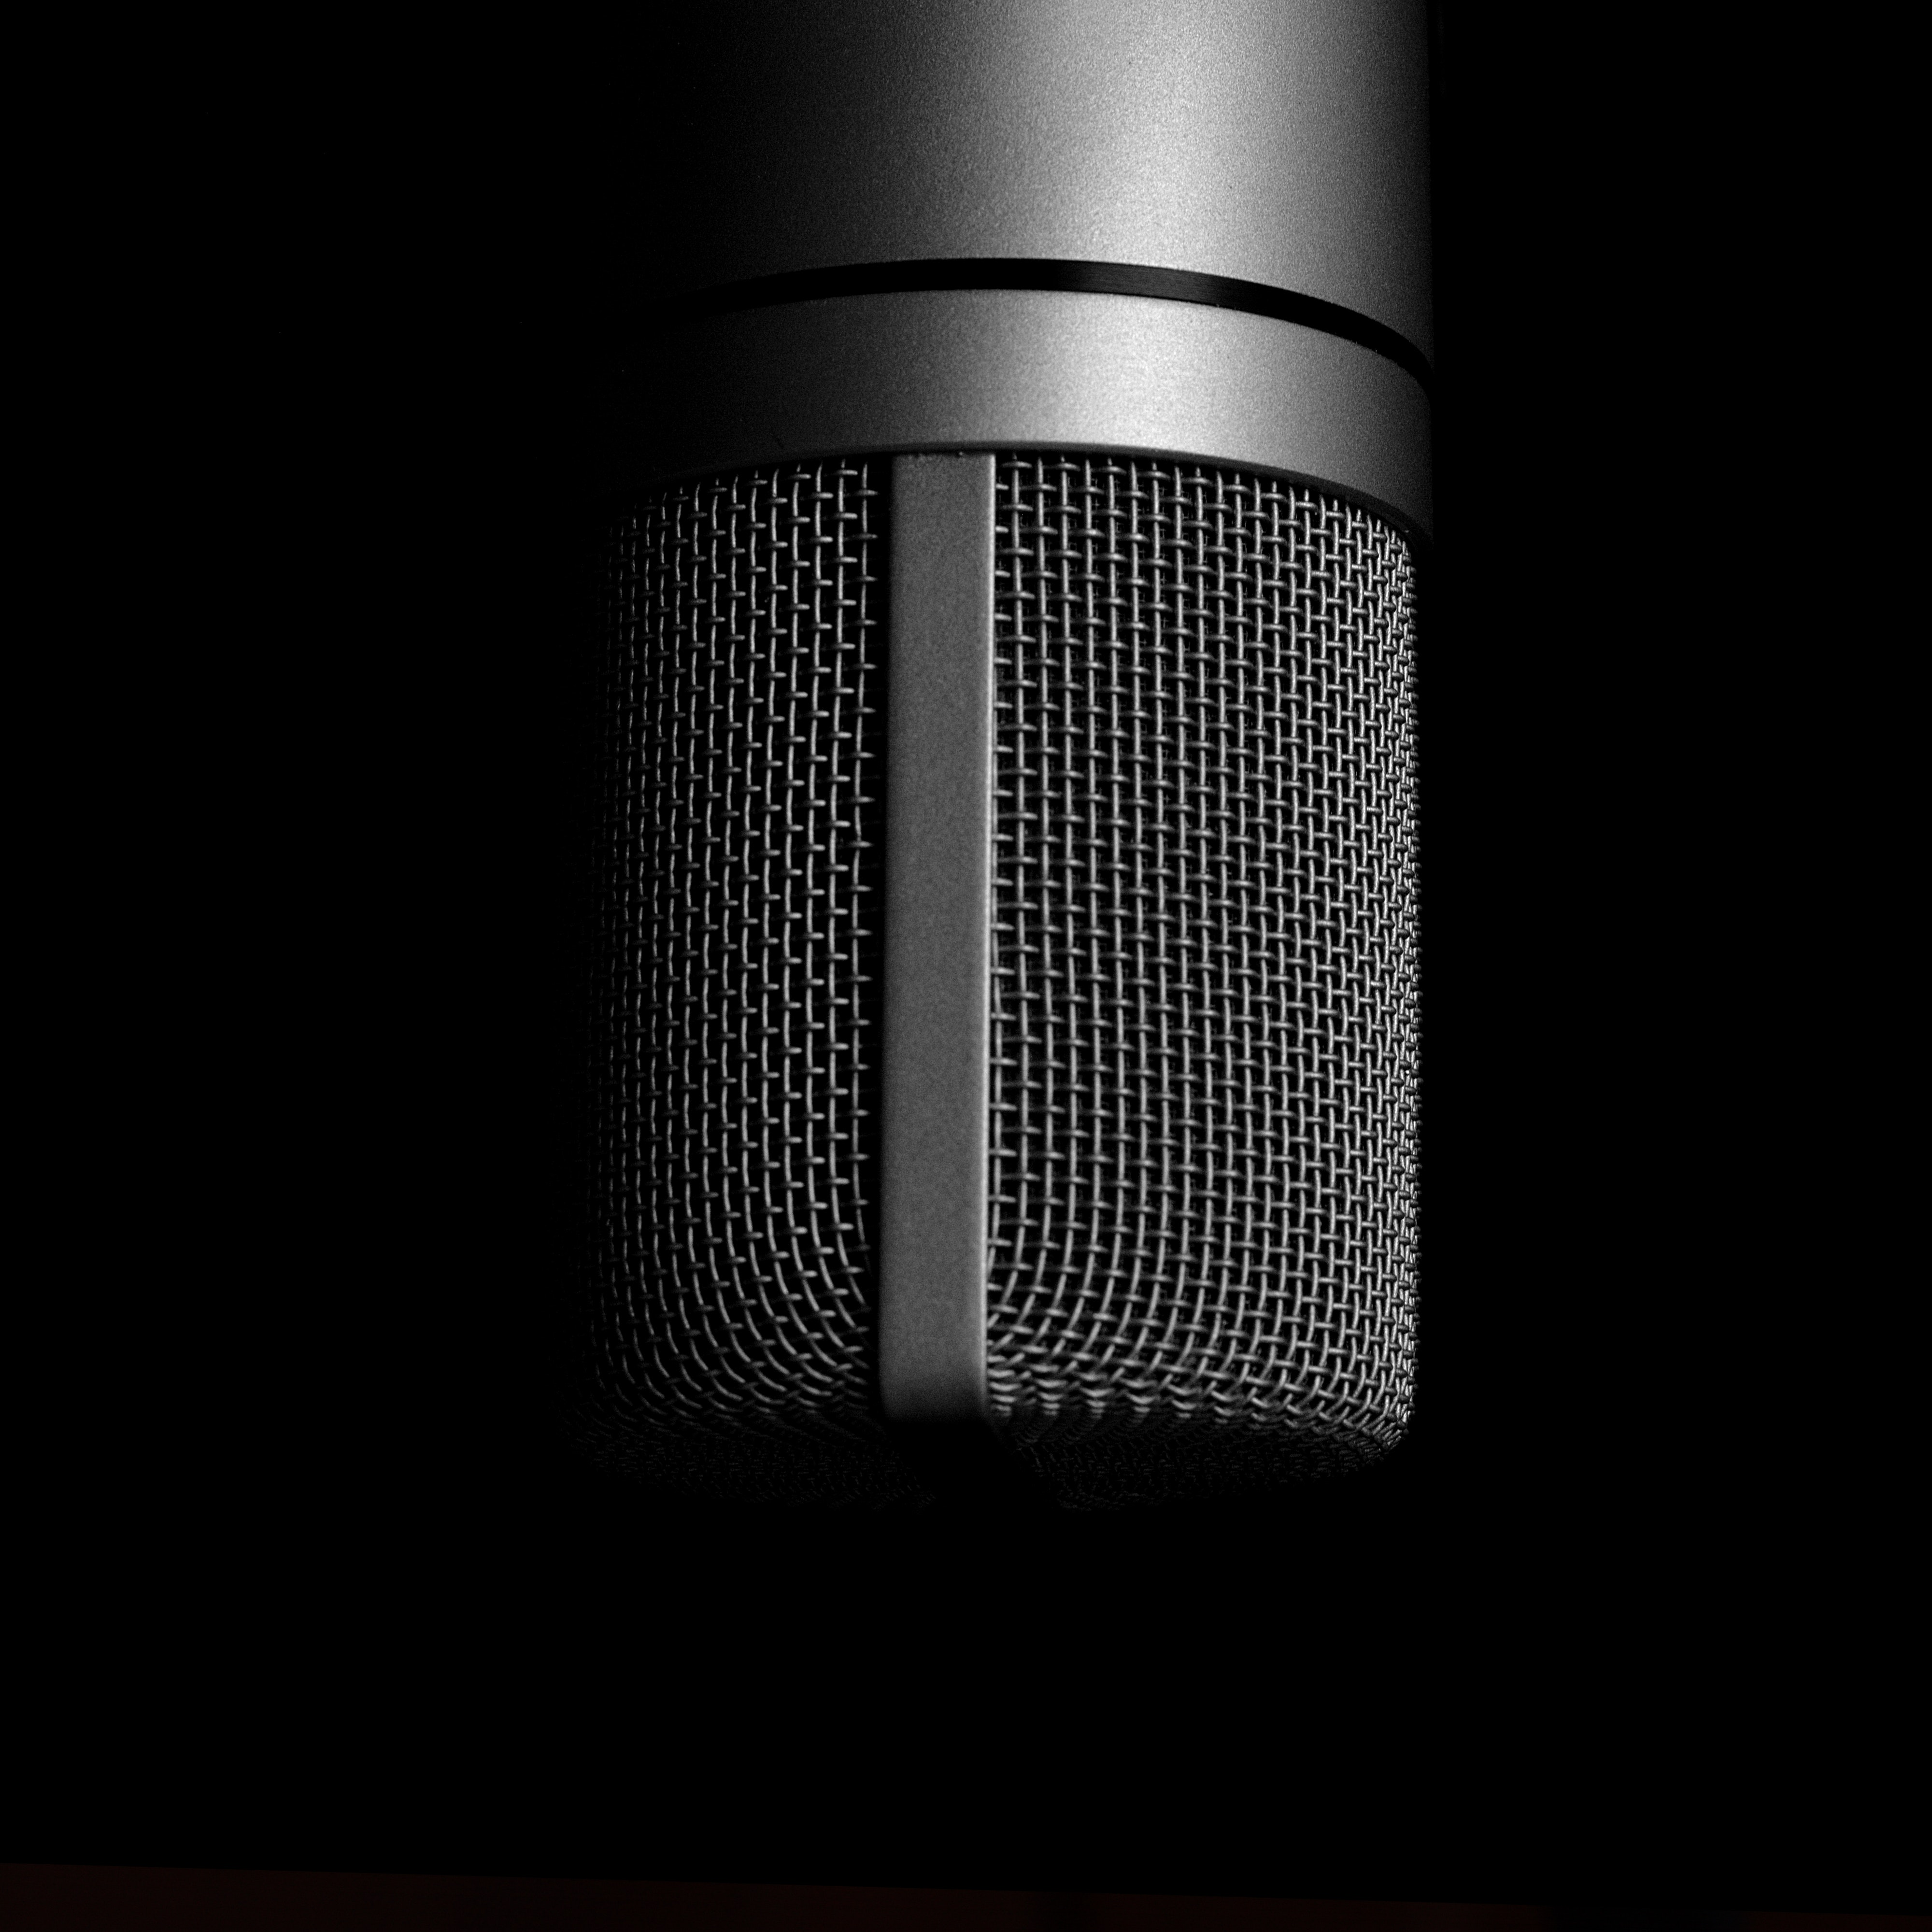 Related Searches Music Microphone Studio Recording